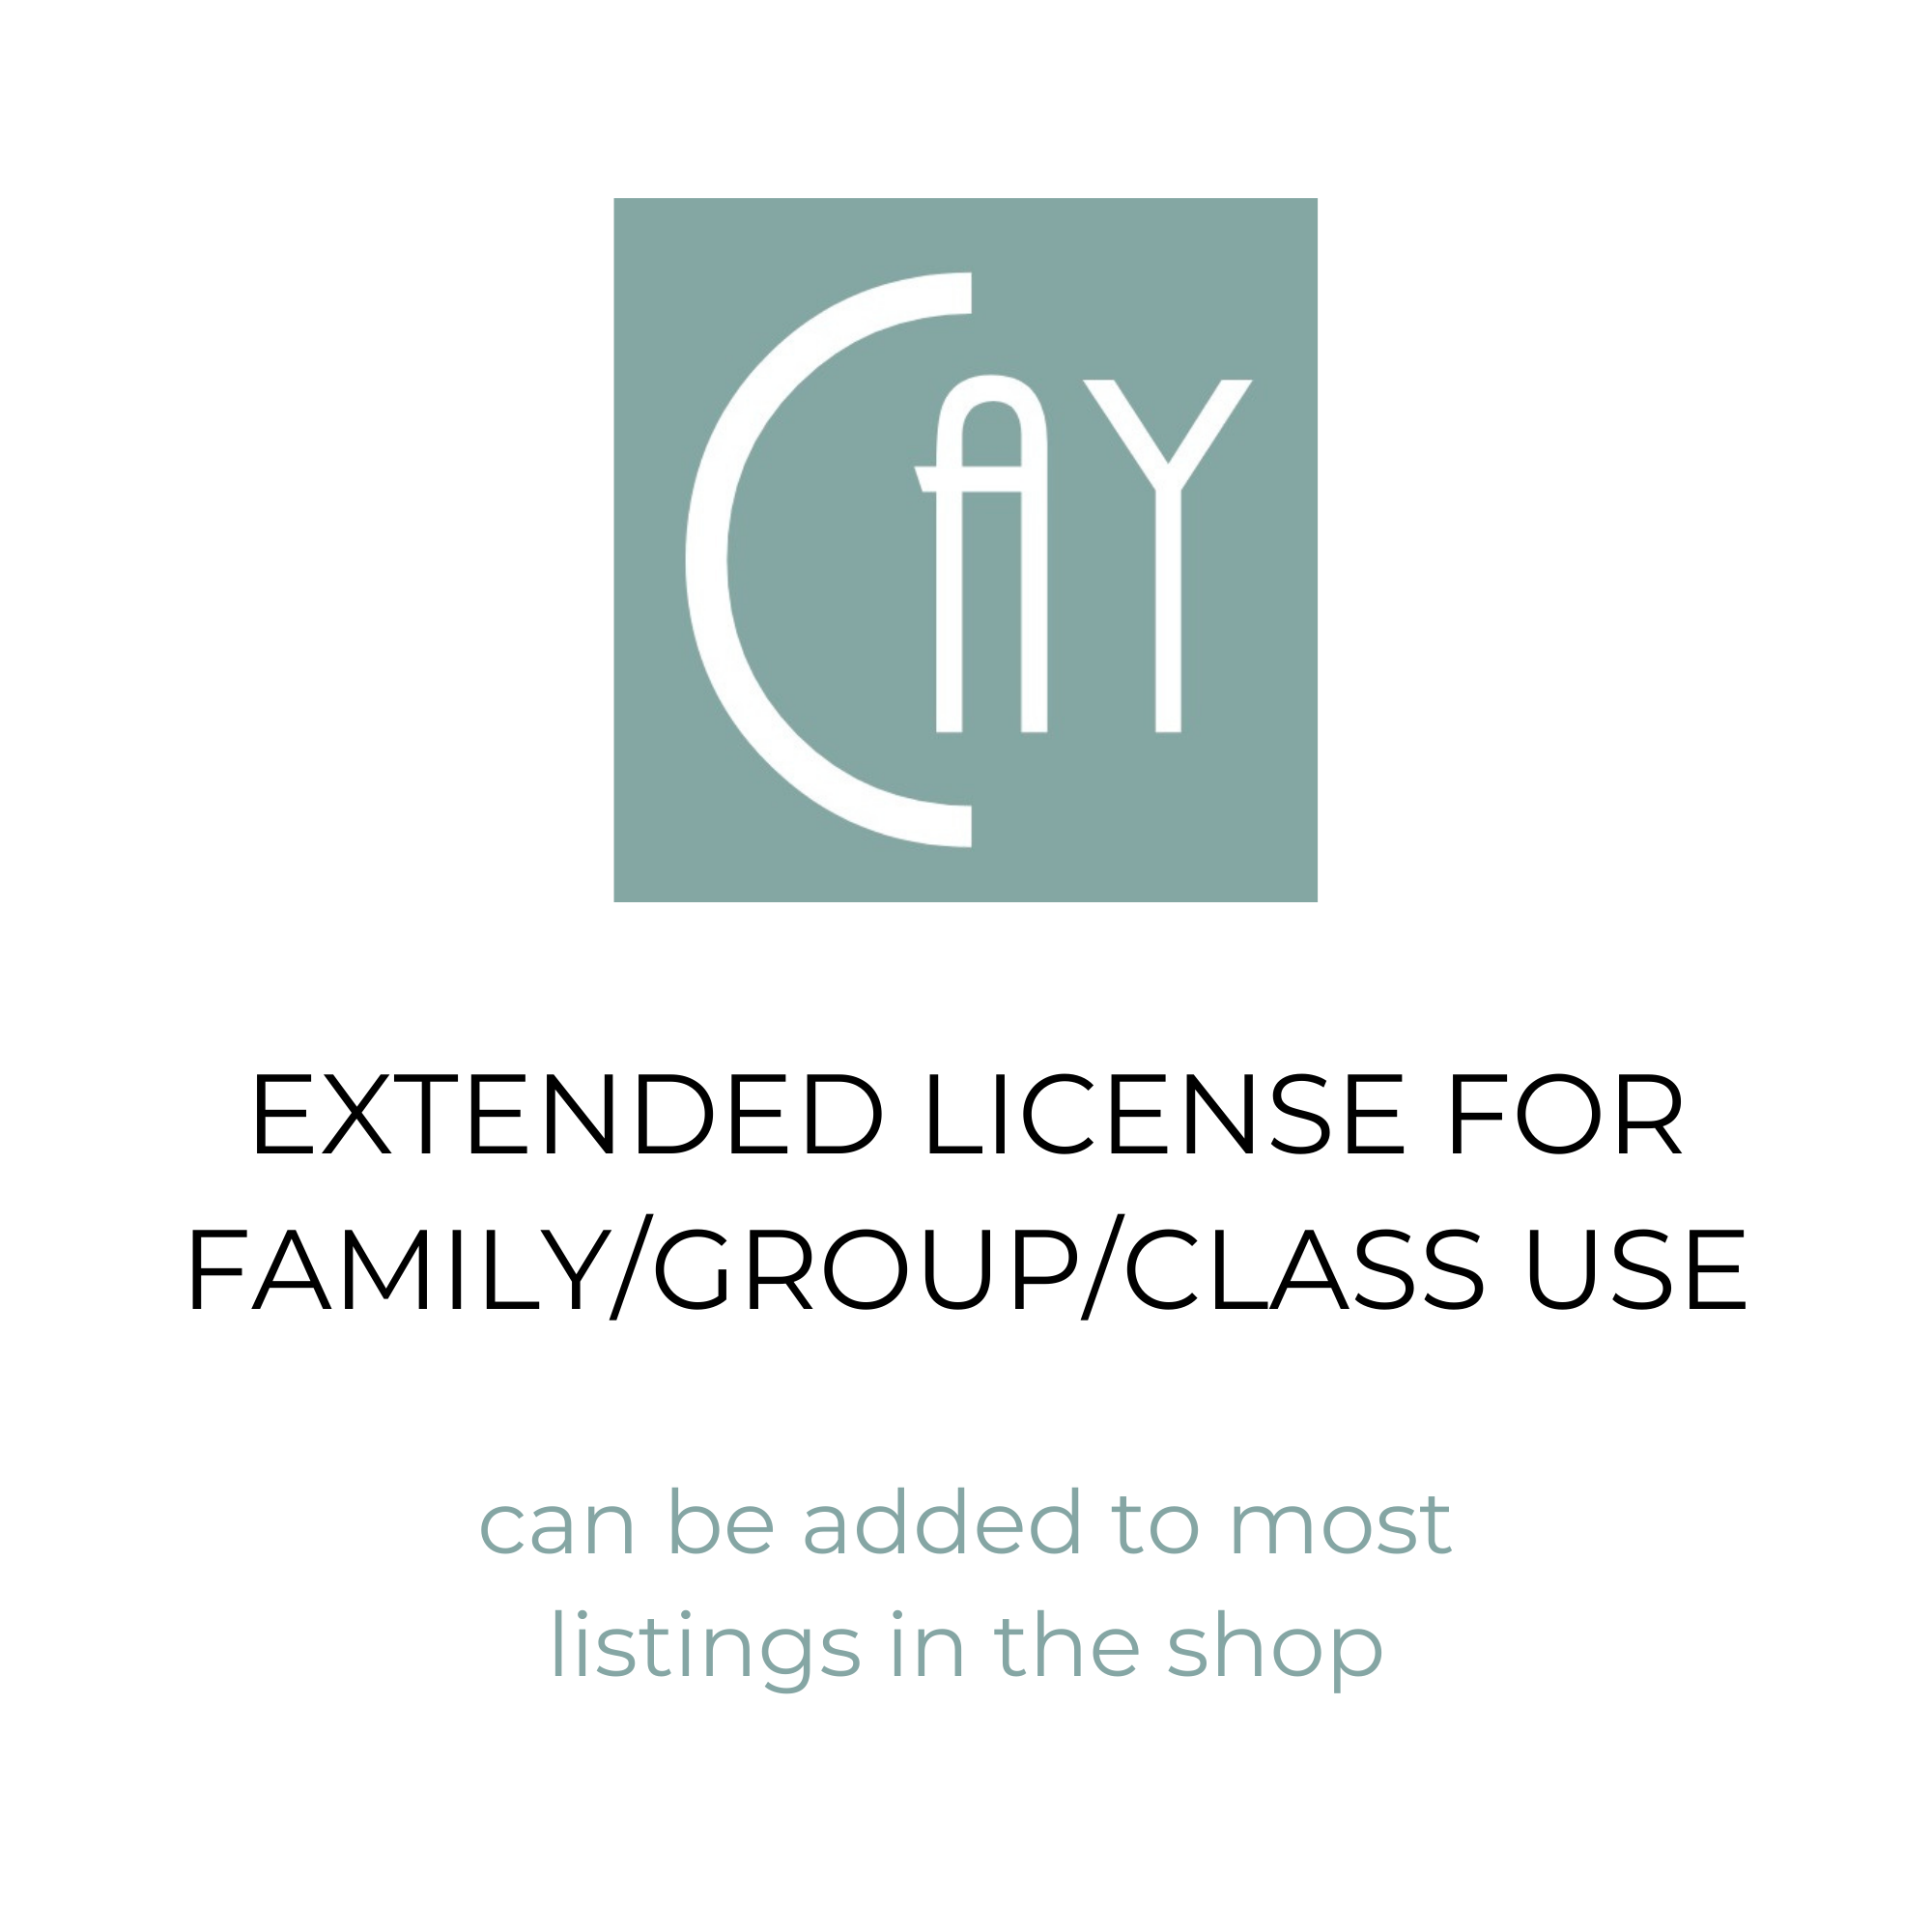 Extended License for Family/Group/Class Use